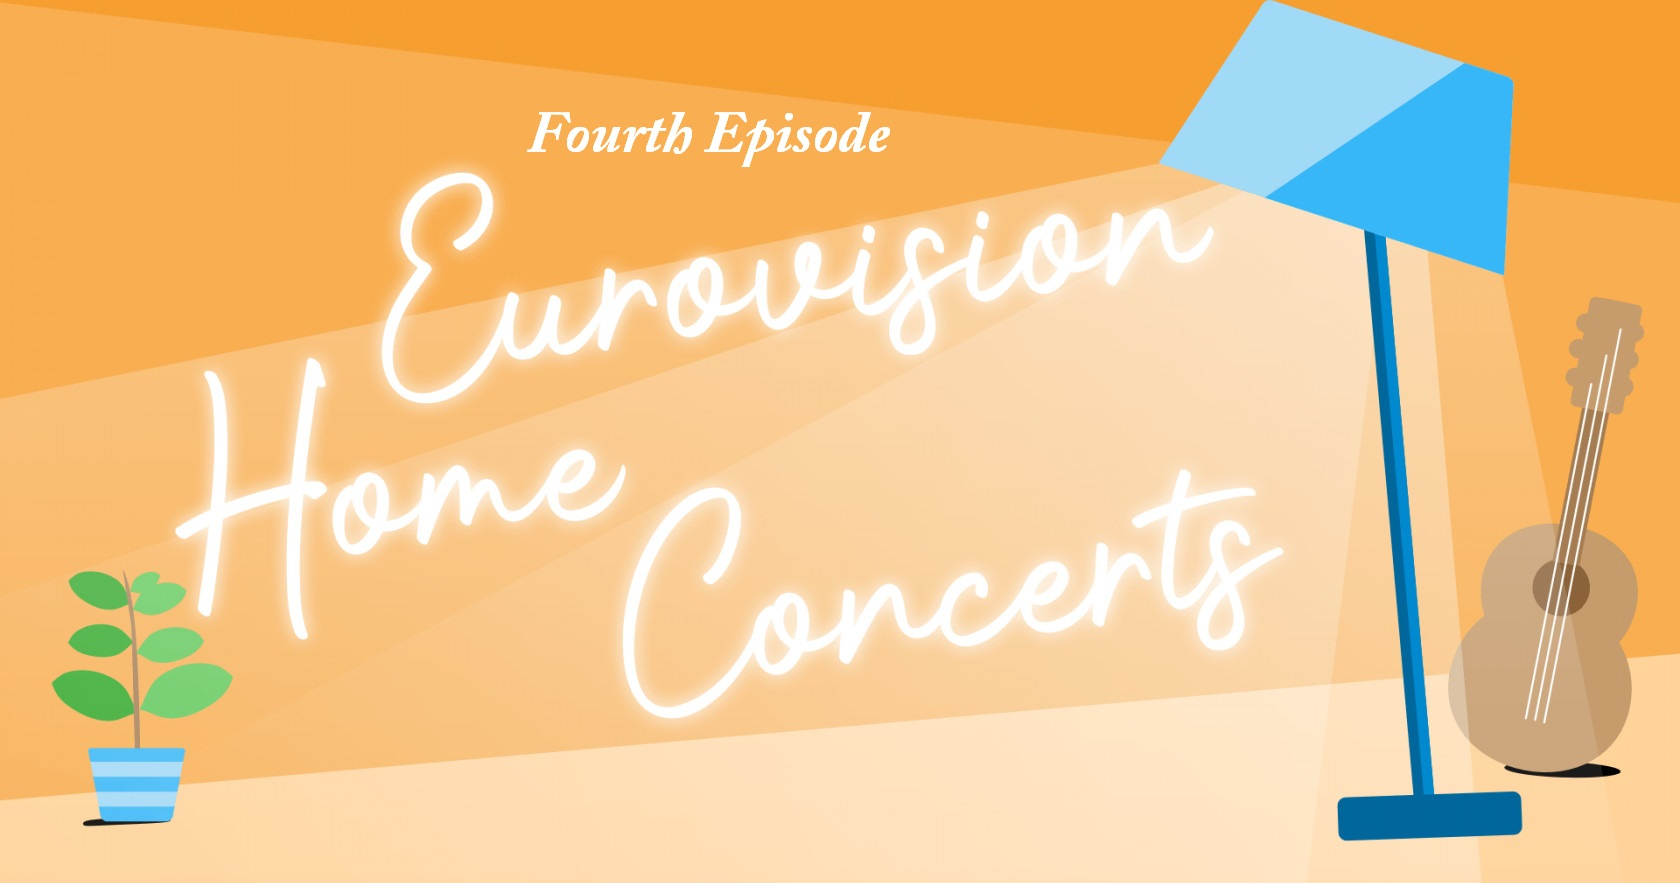 Eurovision Home Concerts: These are the acts to perform in the fourth episode